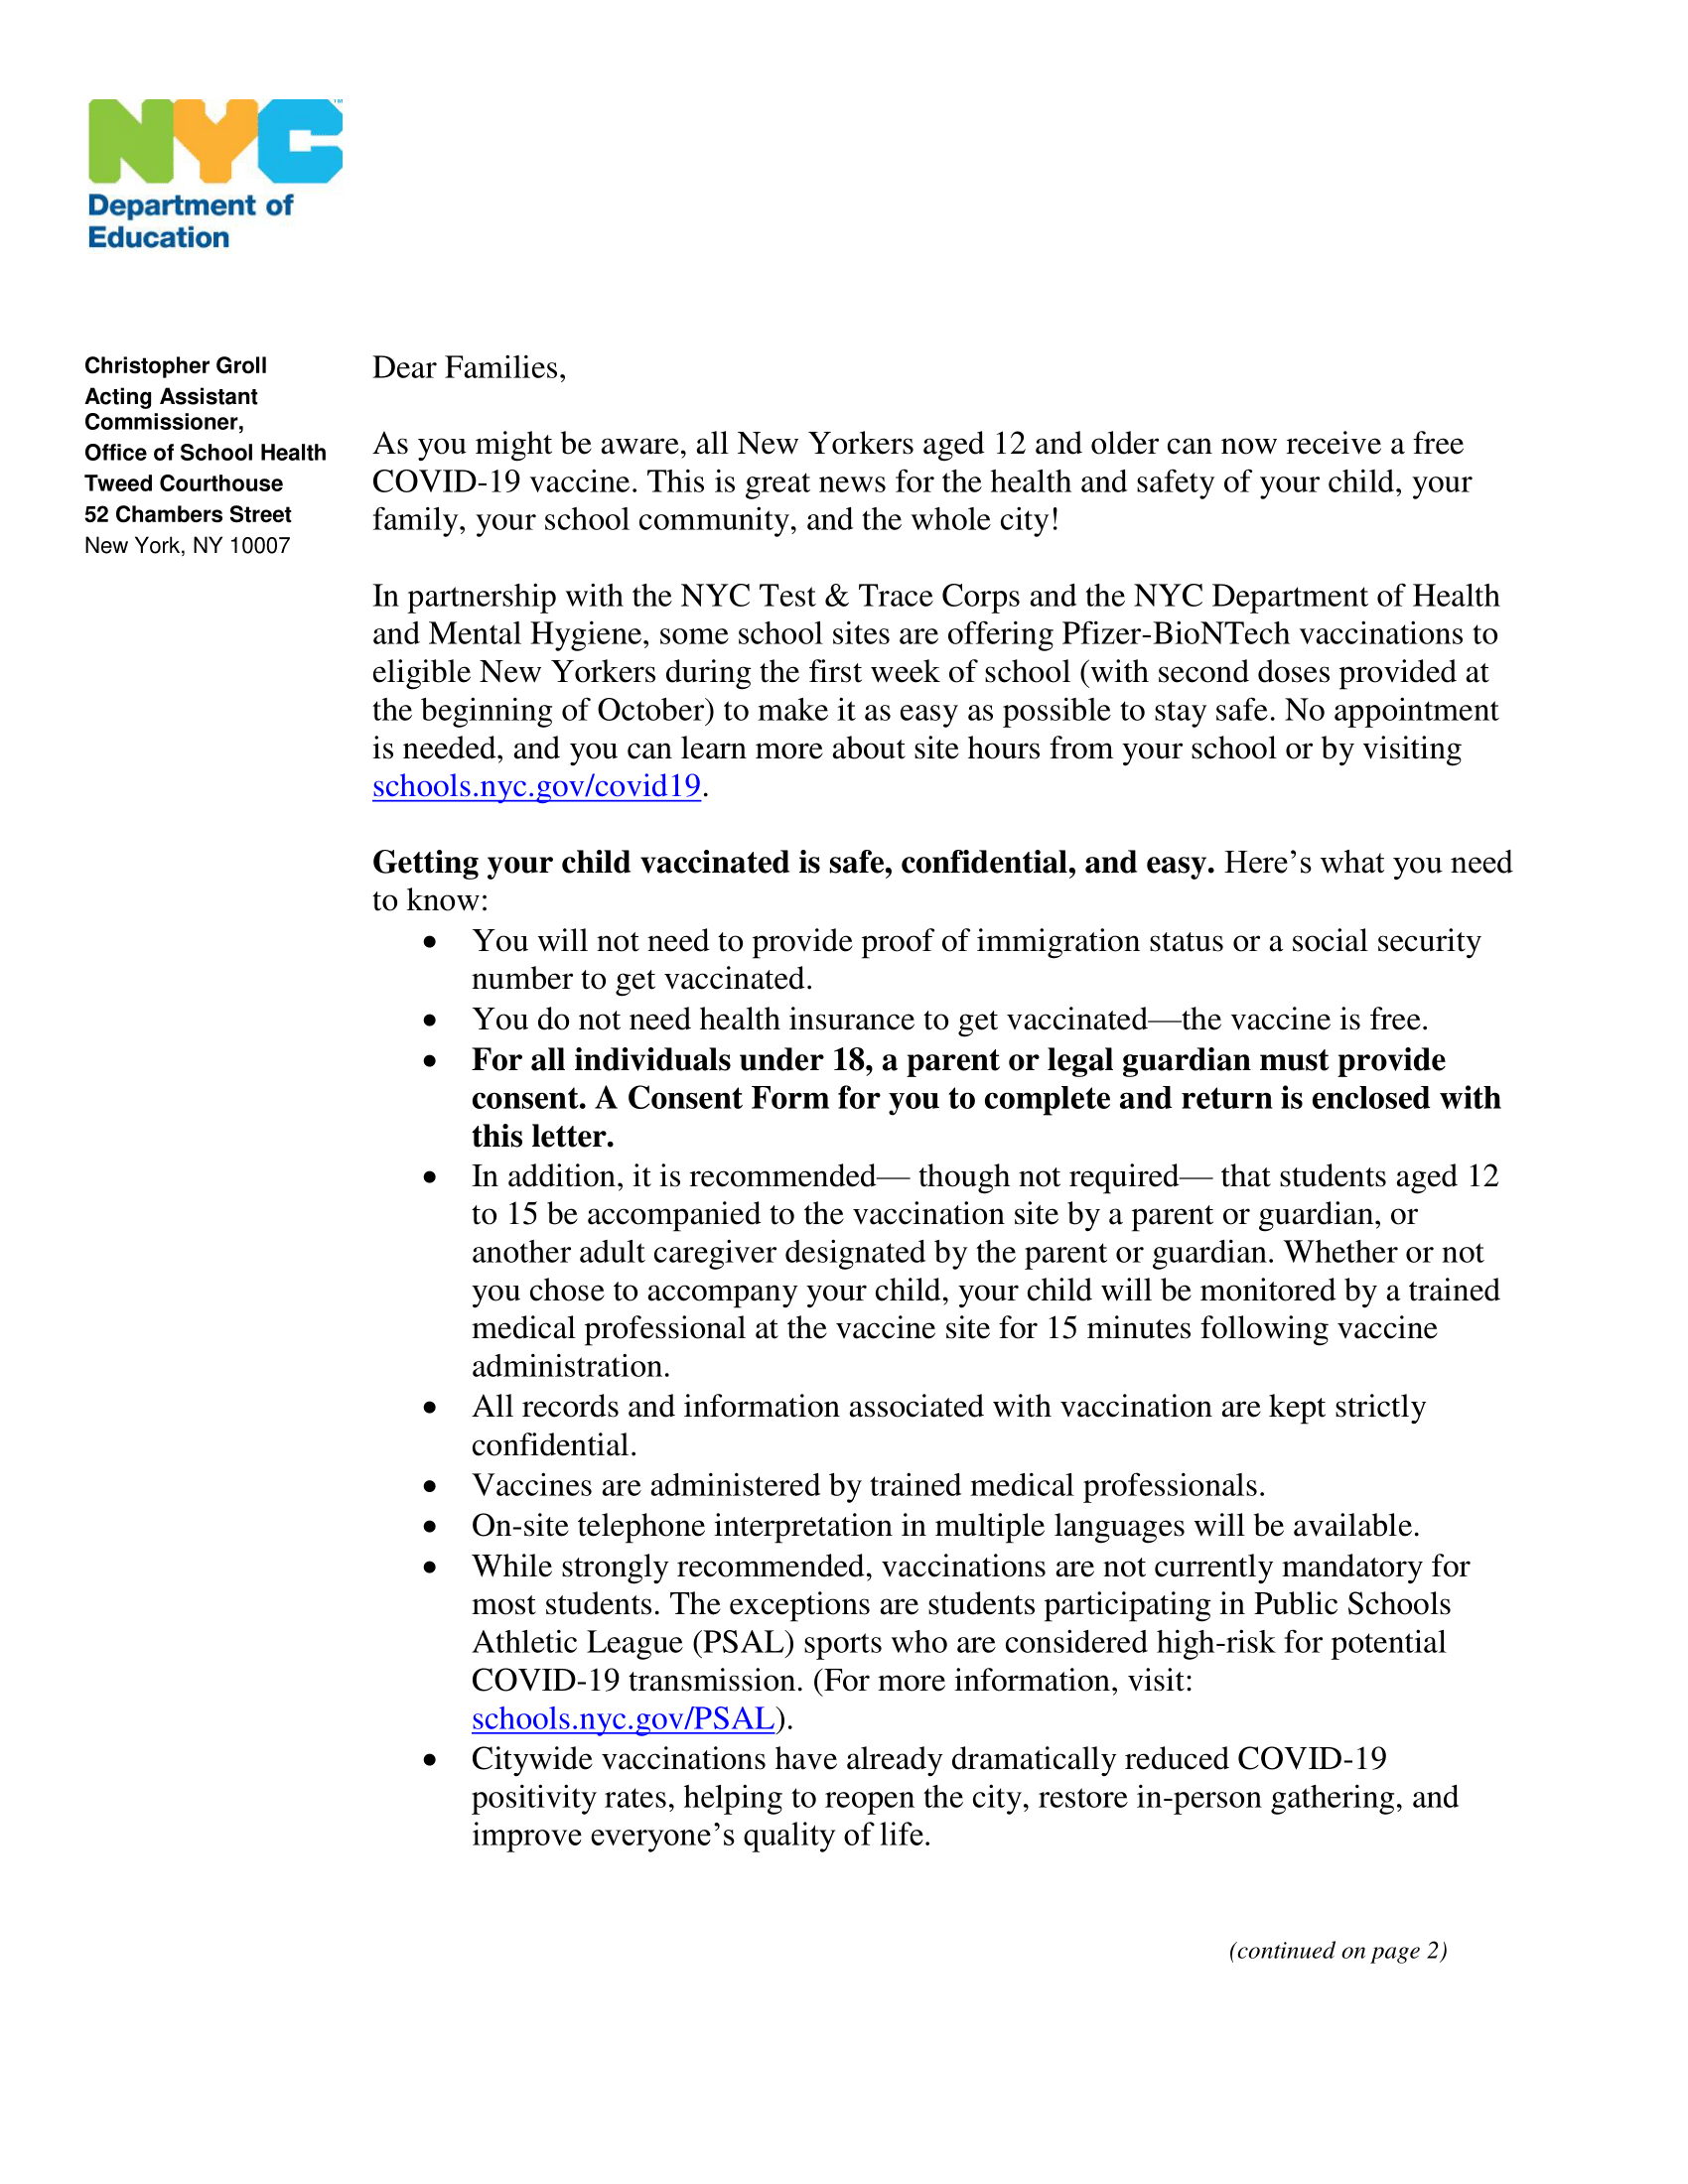 Vaccine Family Letter with Consent Form-1